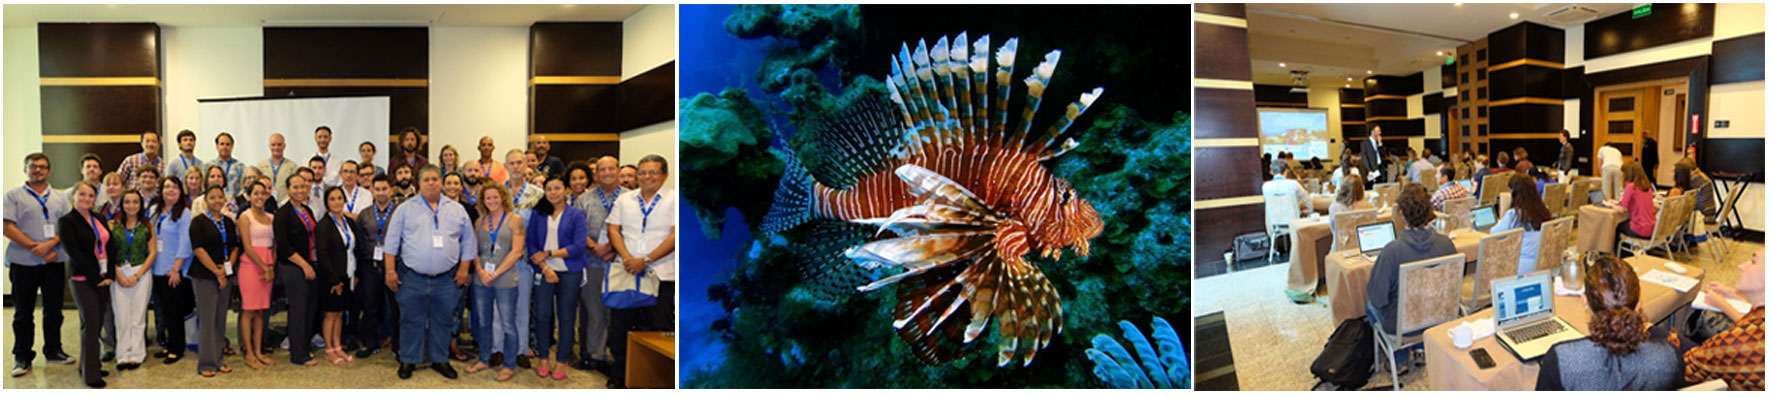 Lionfish Management Group GCFI 2015